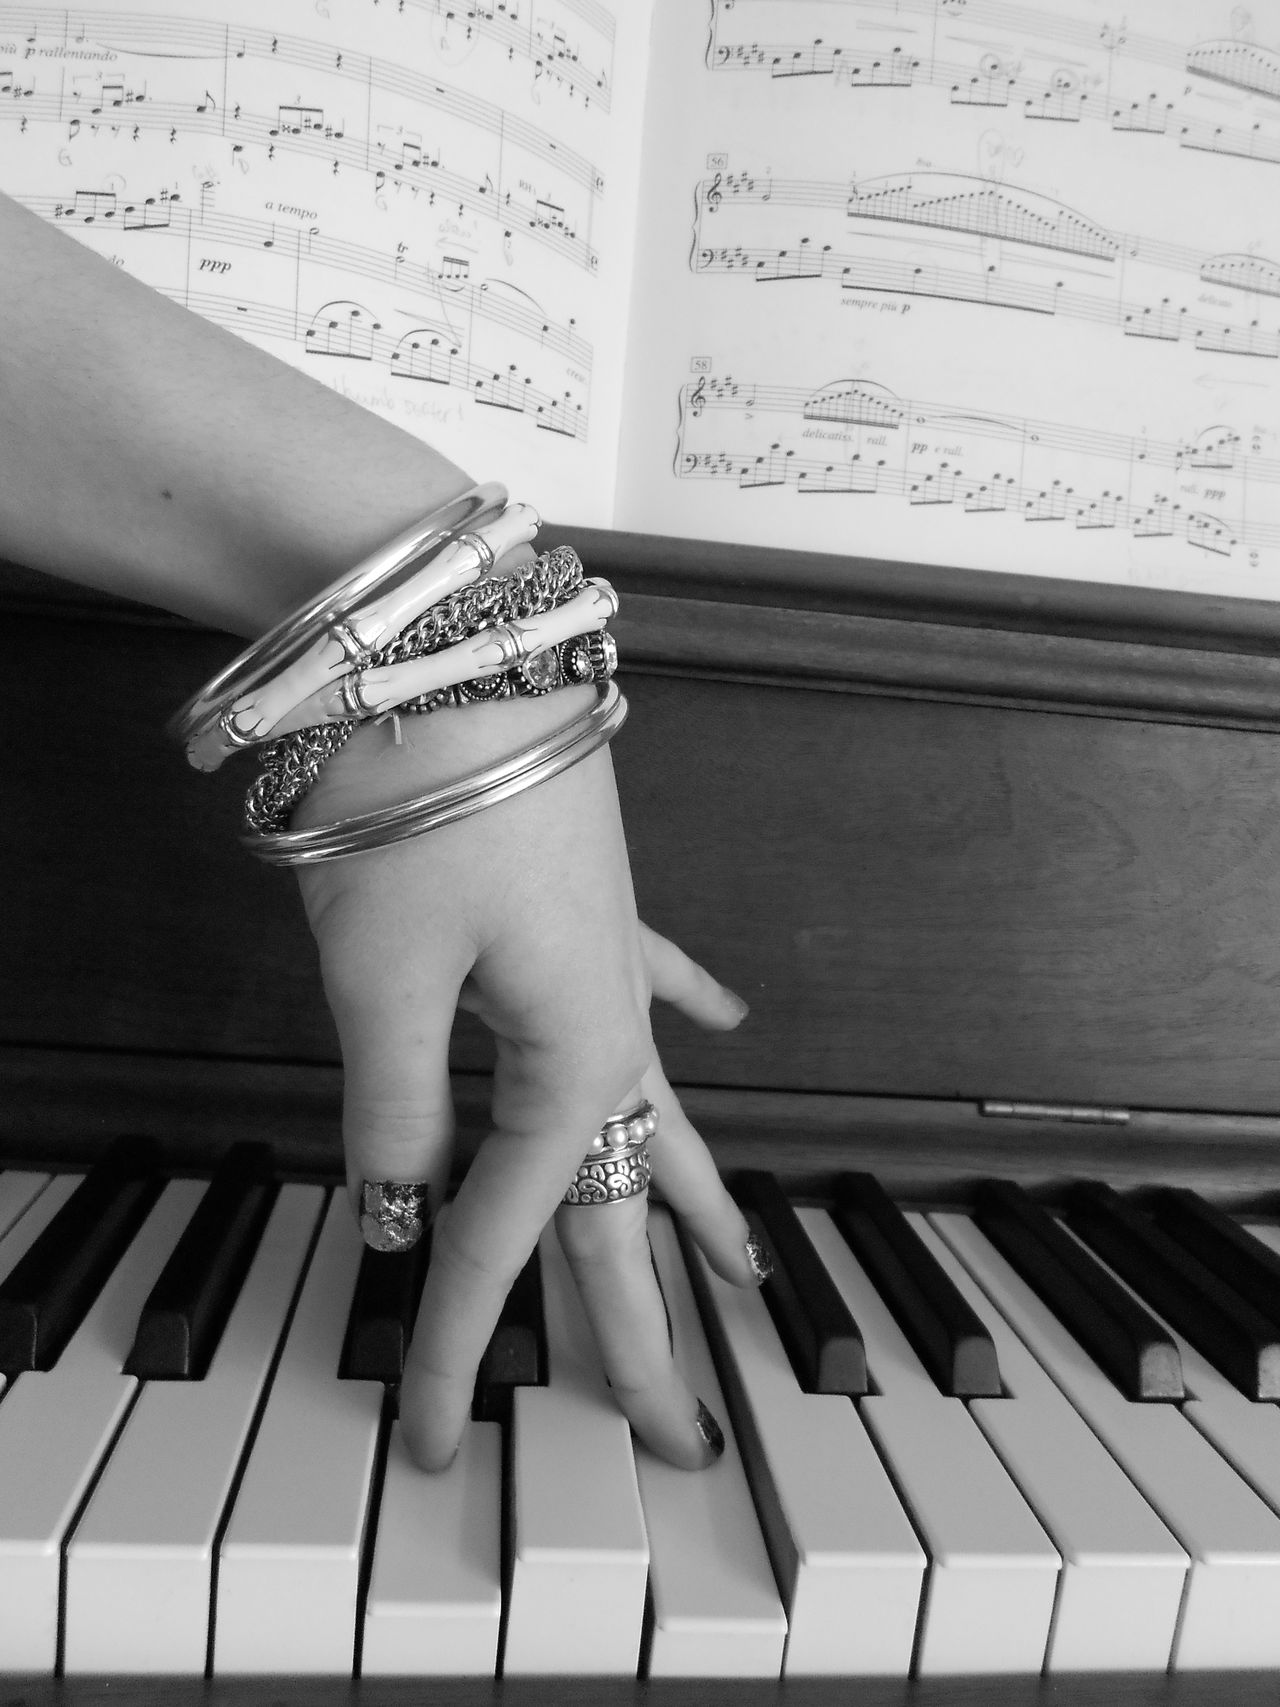 Black & White Black And White Blackandwhite Bracelet Bracelets Chopin Hand Keyboard Music Music Sheet Music Sheets Musiclover Musicnote MusicNotes Nailpolish Piano Piano Key Pianolover Home Is Where The Art Is